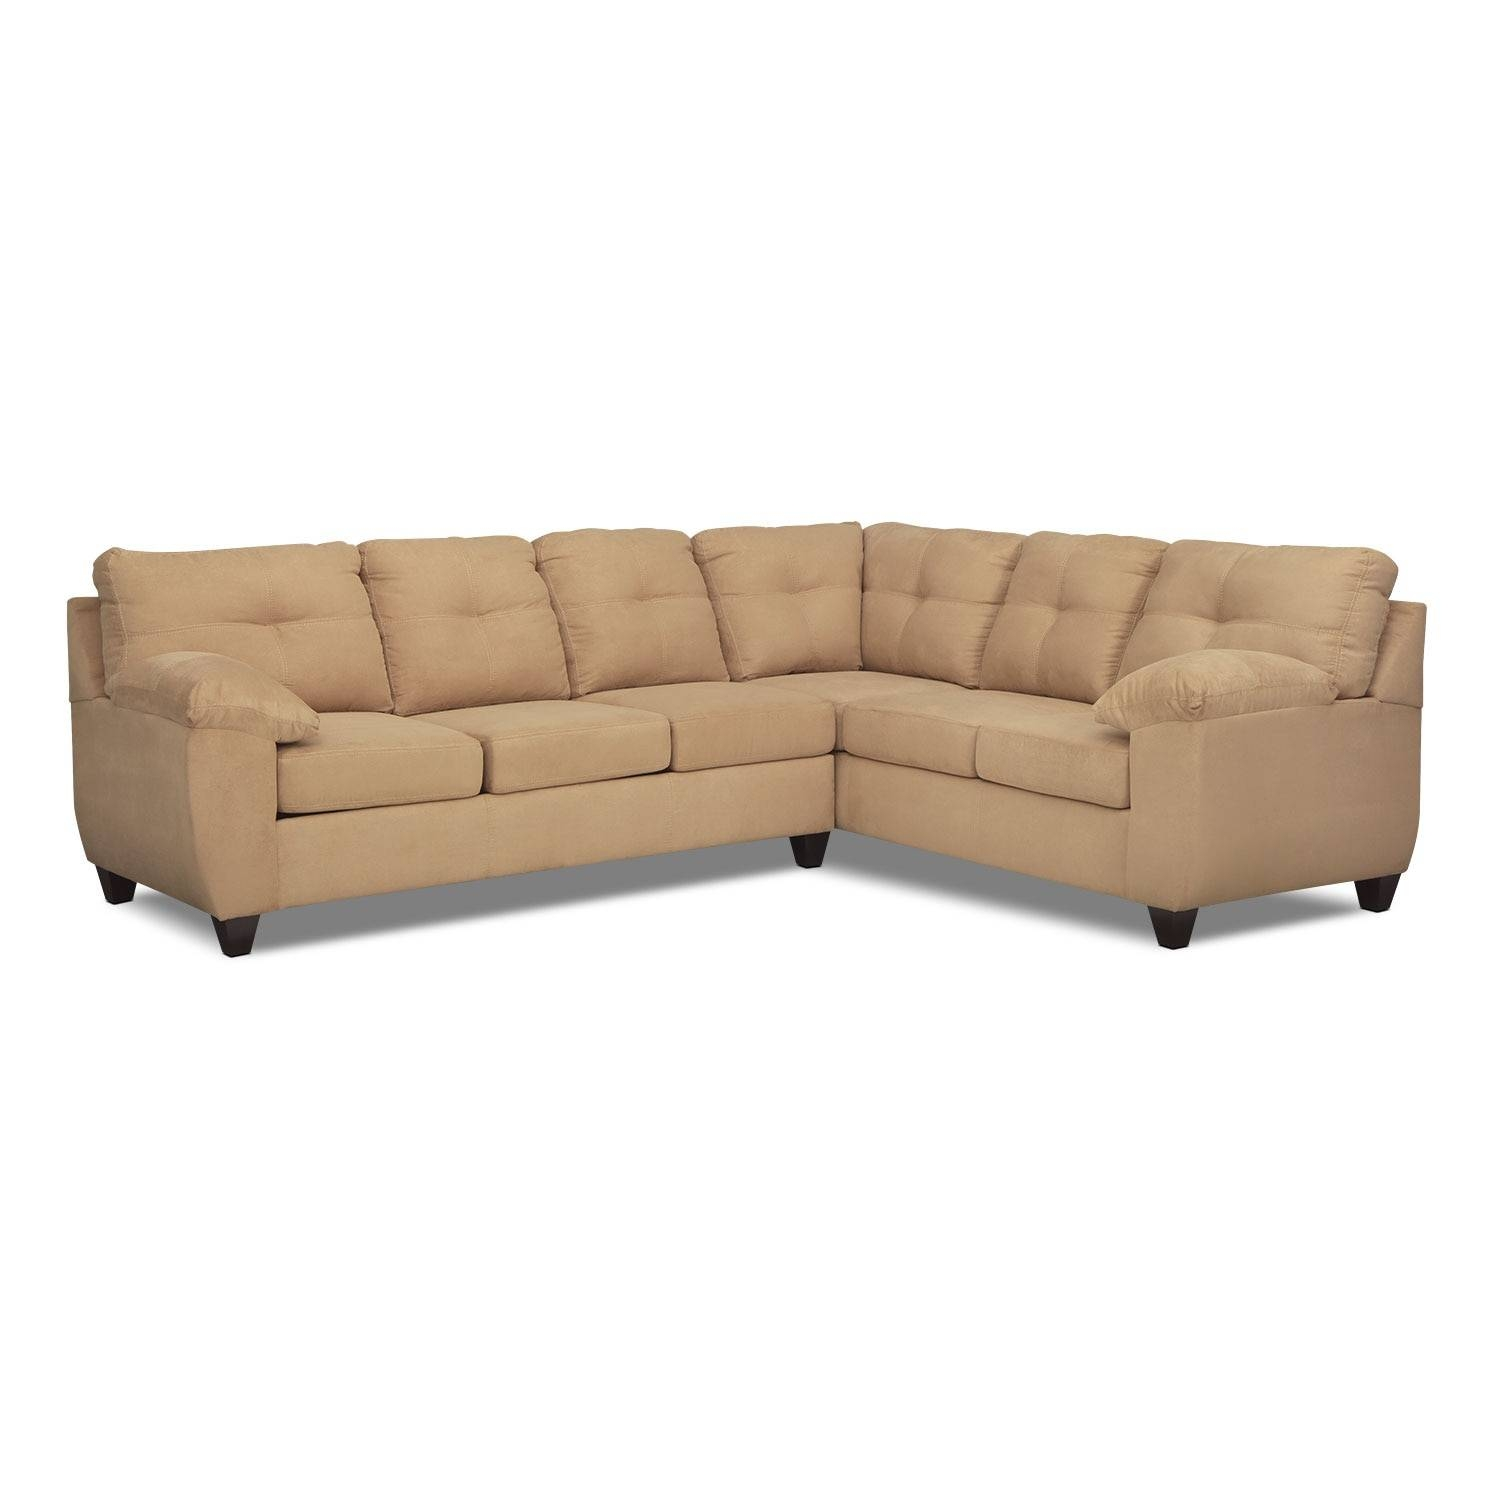 Sleeper Sofas | Value City Furniture | Value City Furniture for Sofa Bed Sleepers (Image 15 of 30)